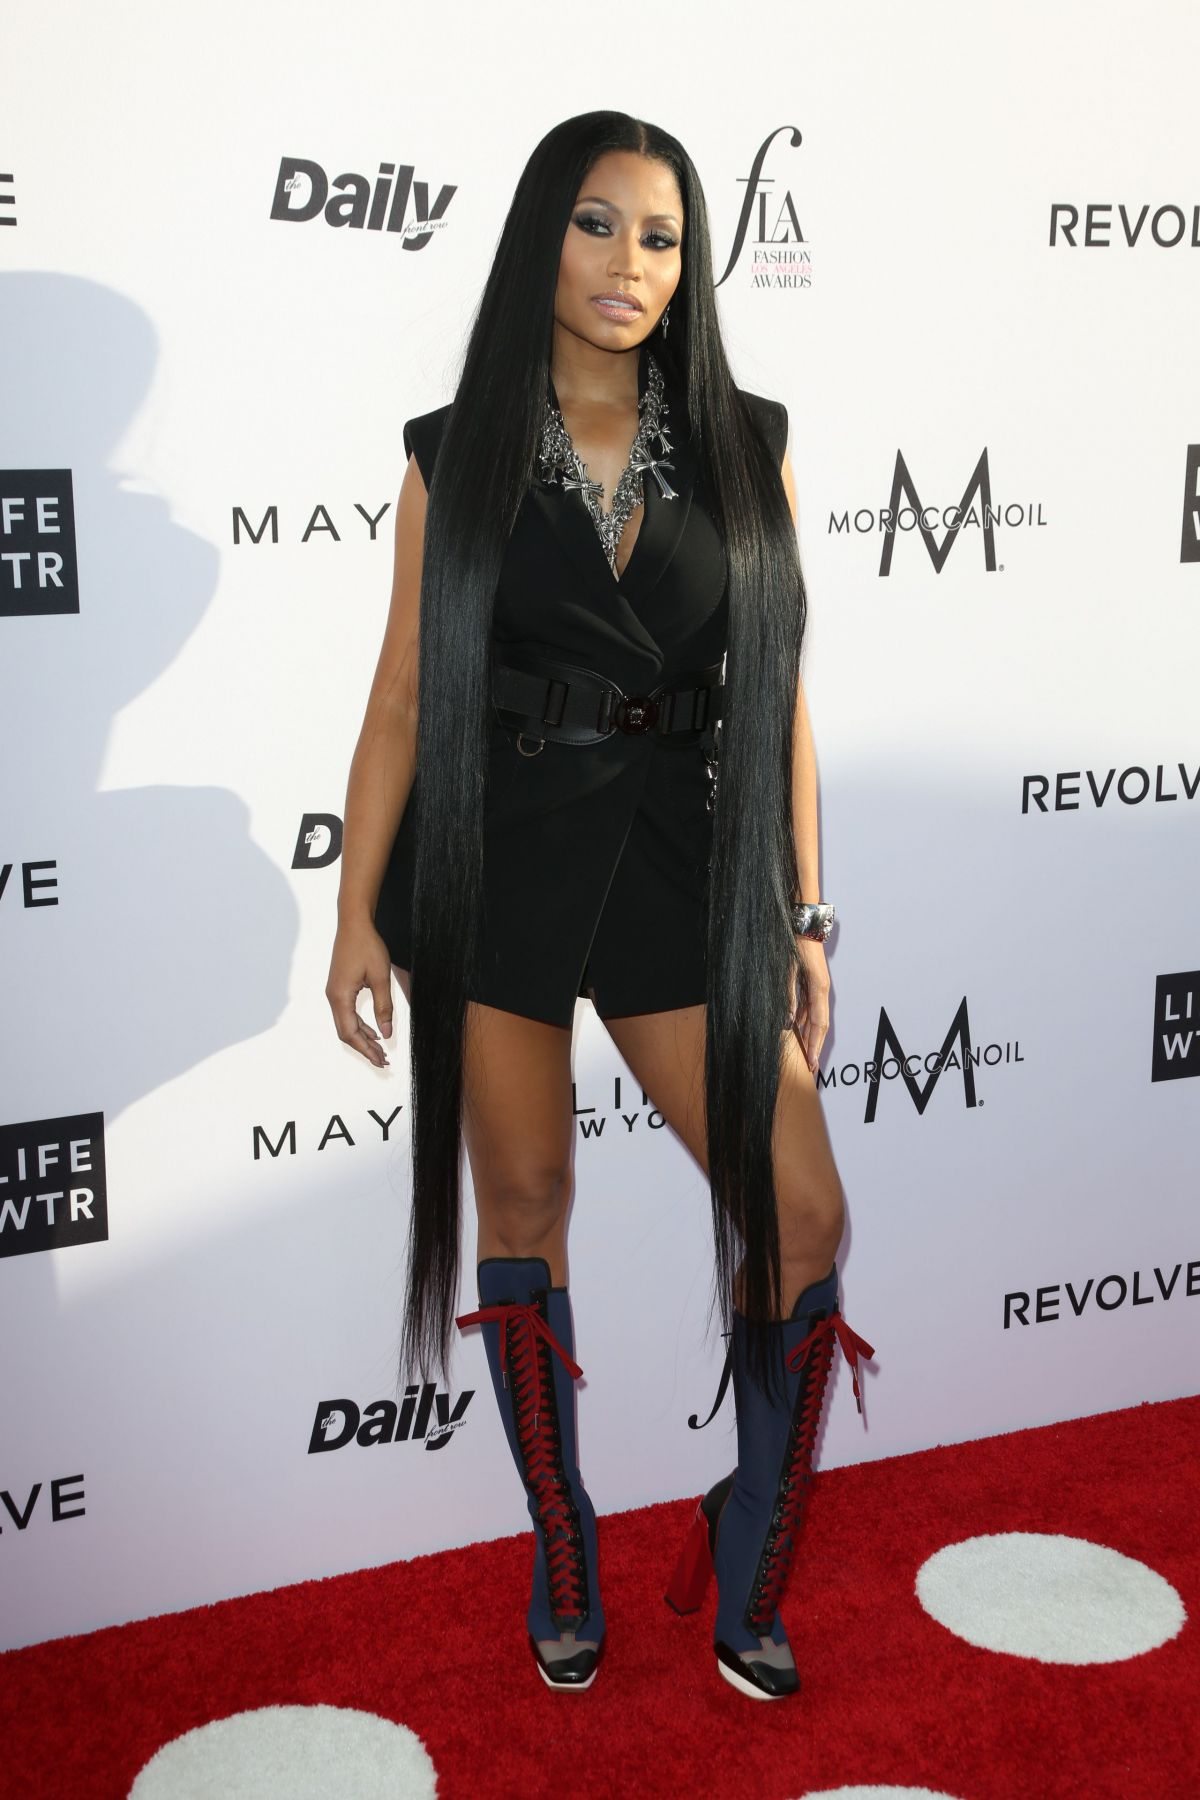 Nicki Minaj At Daily Front Row's 3rd Annual Fashion Los Angeles Awards – West Hollywood   nicki-minaj-at-daily-front-row-s-3rd-annual-fashion-los-angeles-awards-west-hollywood_8